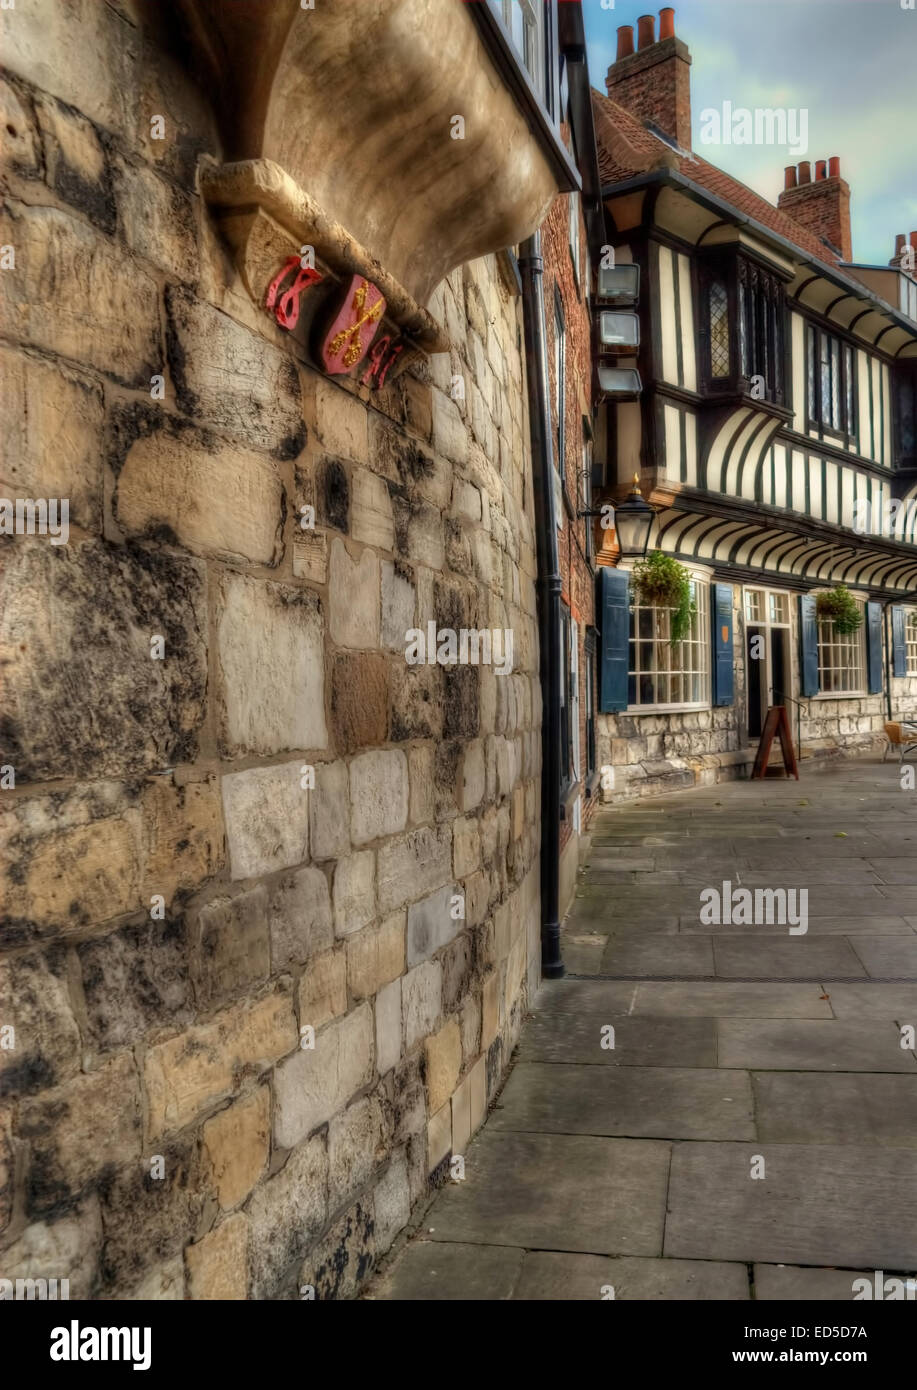 One of the many wonderful scenes from York, North Yorkshire. Stock Photo